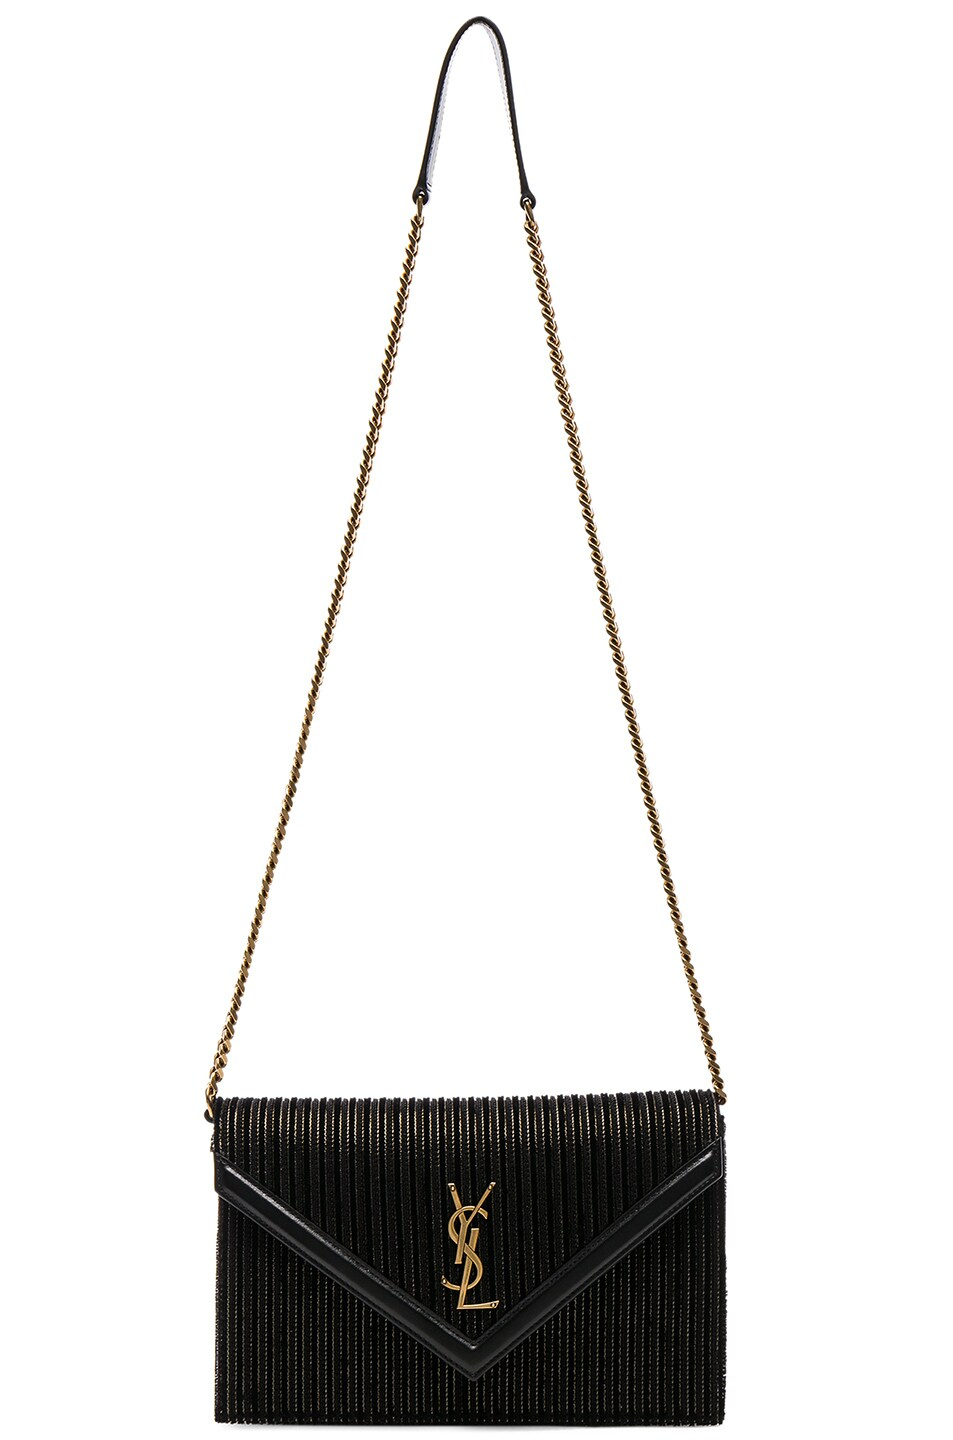 Image 6 of Saint Laurent Velvet & Leather Monogramme Le Sept Chain Bag in Black, Gold & Silver